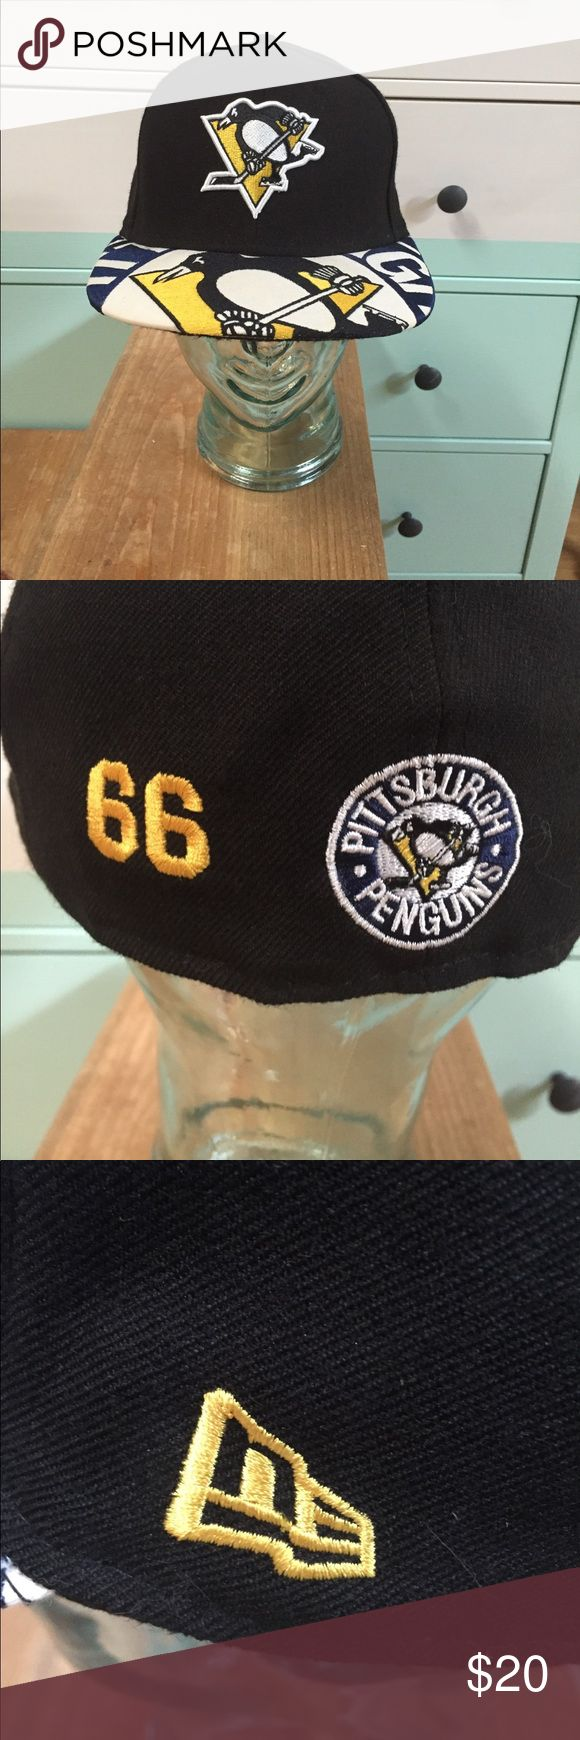 NEW ERA 59FIFTY fitted PITTSBURGH PENGUINS cap NWT! Penguins are flightless birds, but you'll be FLY in this 7 1/2 fitted NEW ERA cap with custom #66 Mario Lemieux embroidery! The graphic on the brim makes this even better, and the 59FIFTY line is pro gear for a pro attitude. Never worn -- sat on display. See New Era's website for sizing info. Let's Go Pens!!! 🖤💛 New Era Accessories Hats